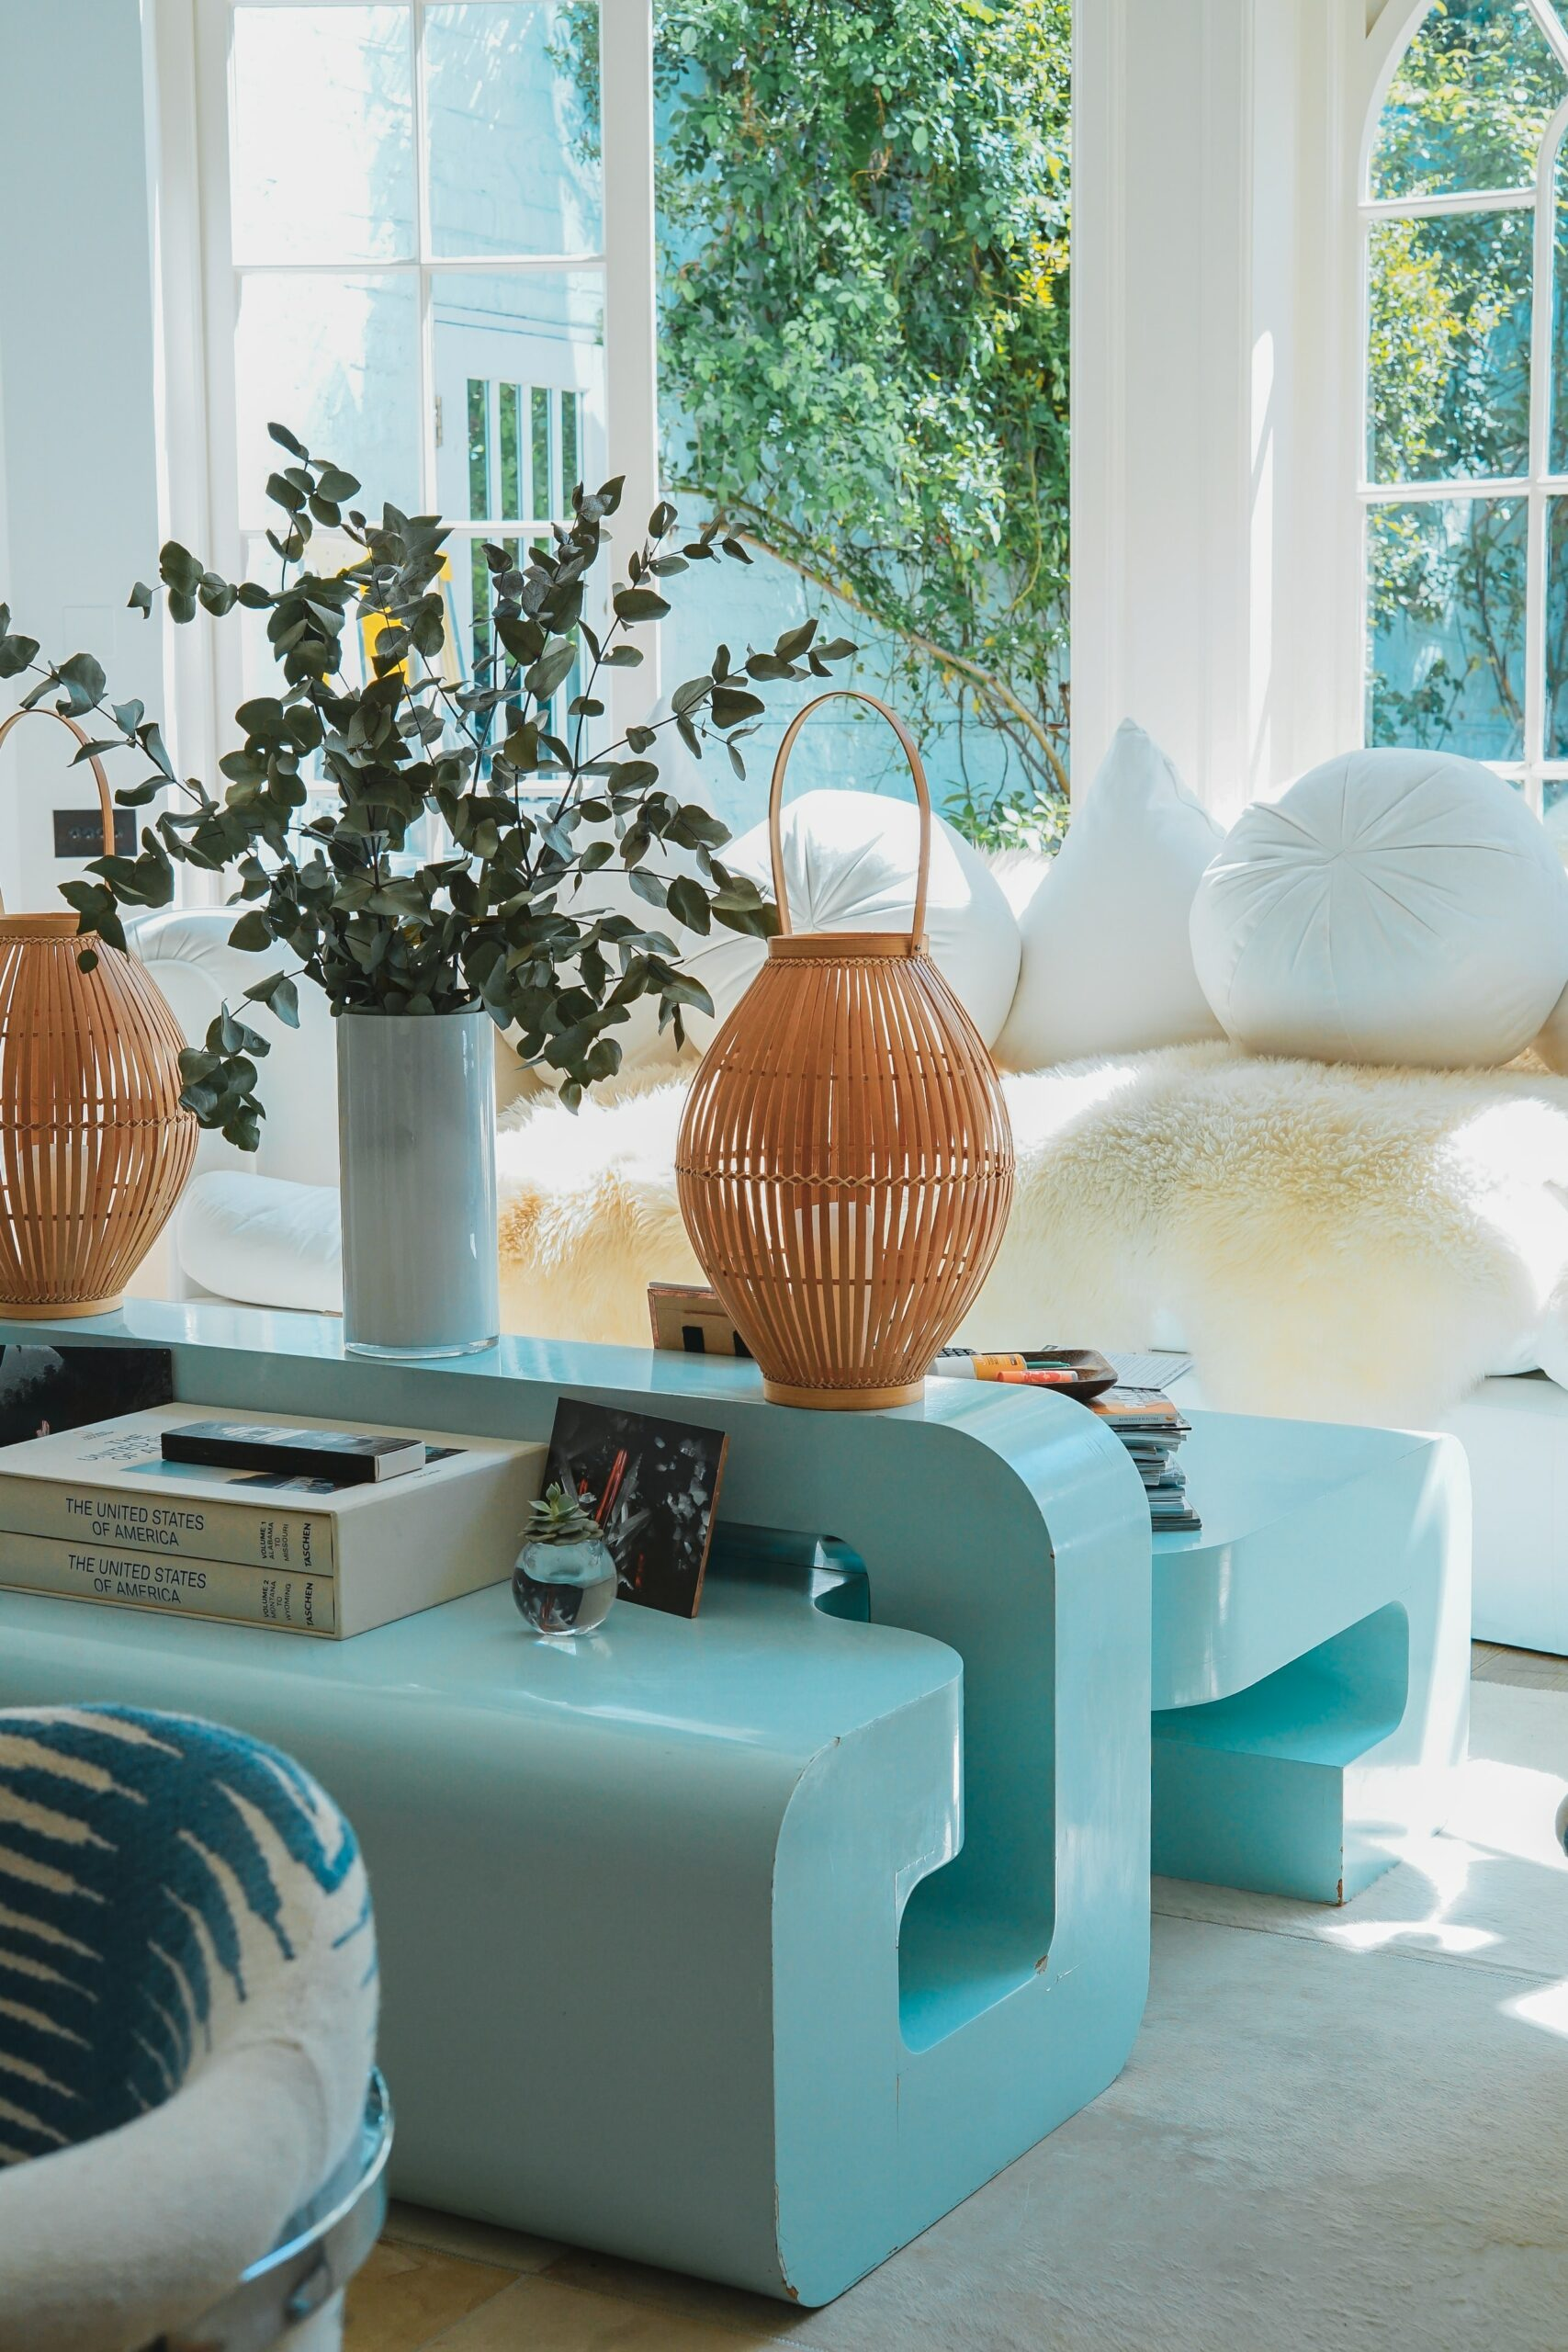 How to Create a Focal Point in Your Room's Interior Design